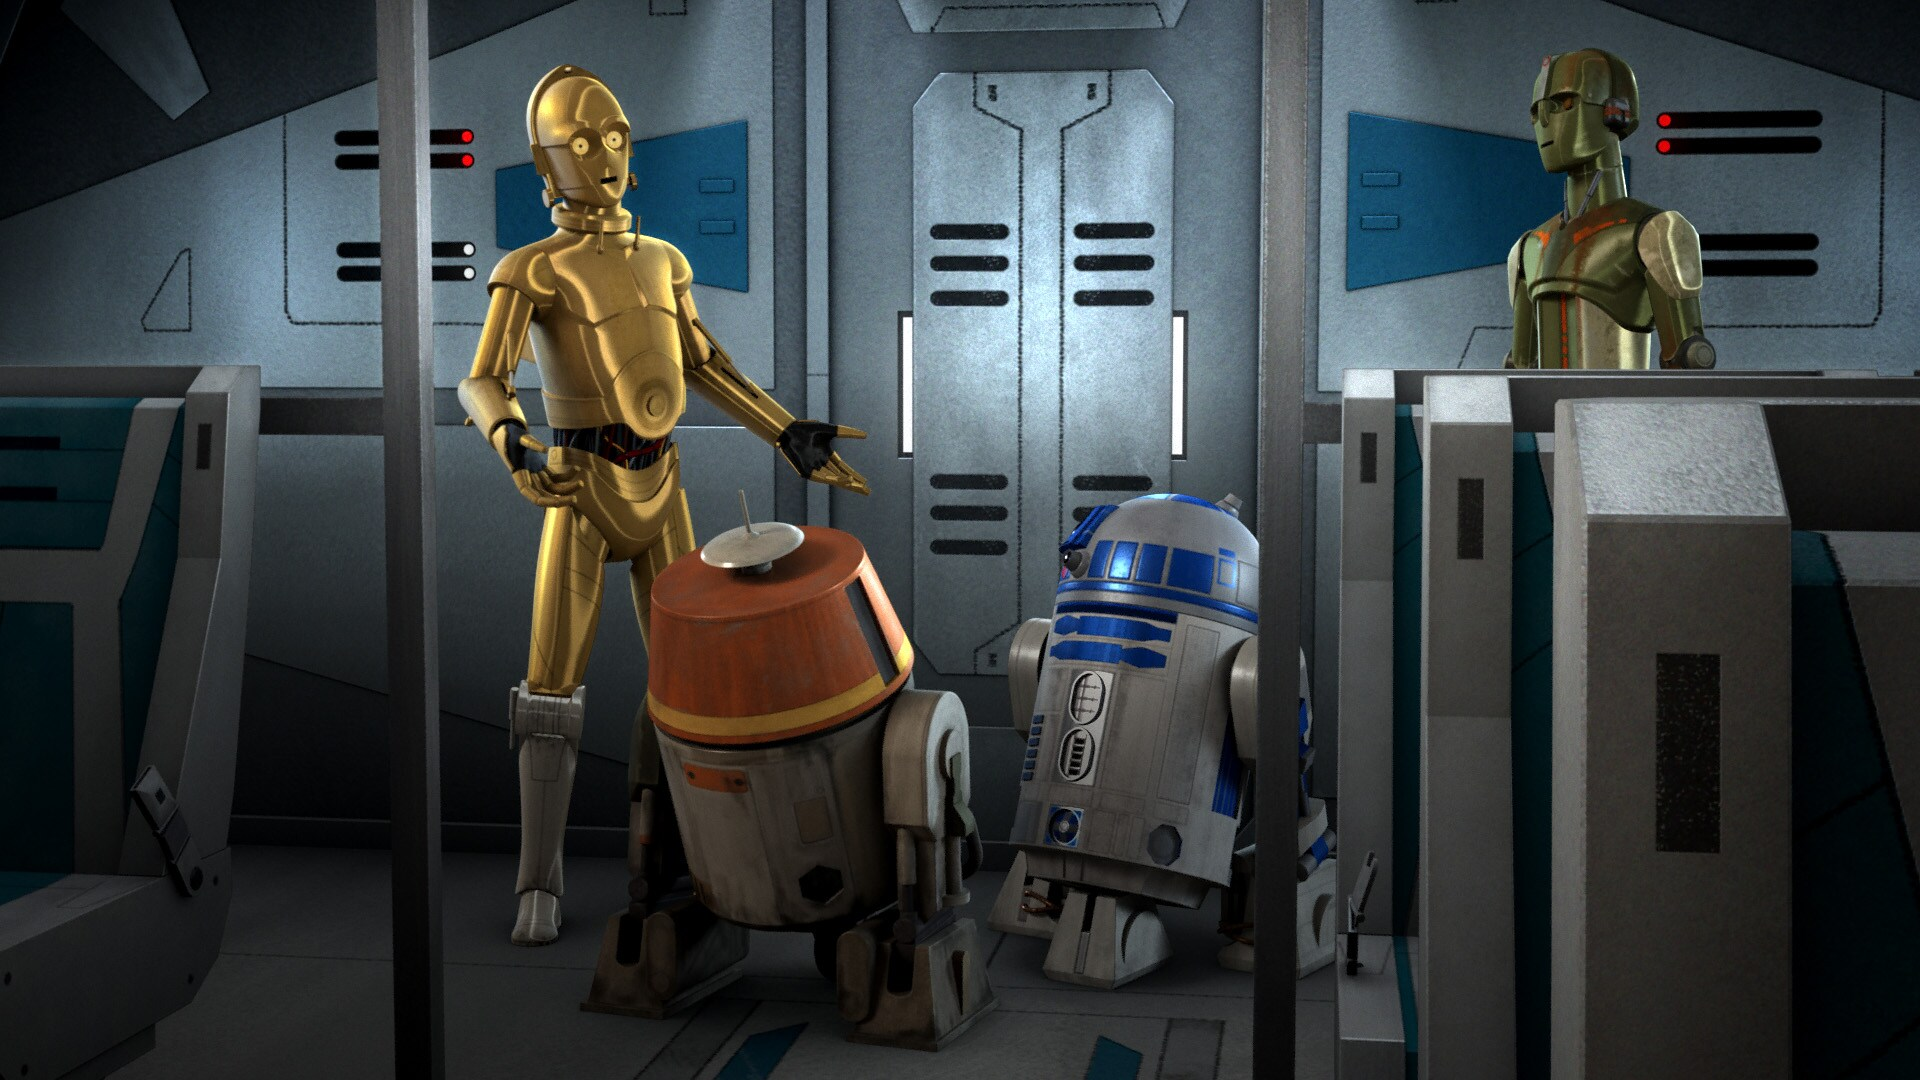 C-3PO and R2-D2 in Droids in Distress